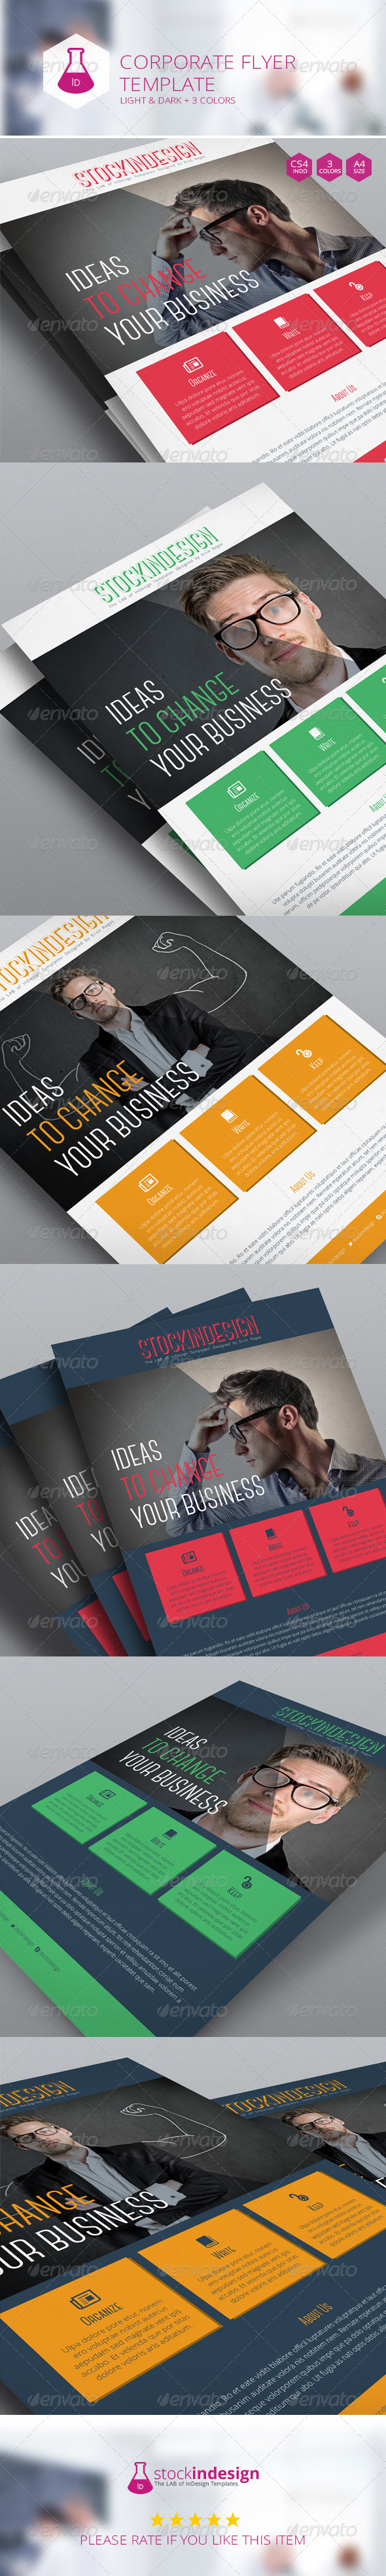 GraphicRiver Corporate Flyer Template 7132542